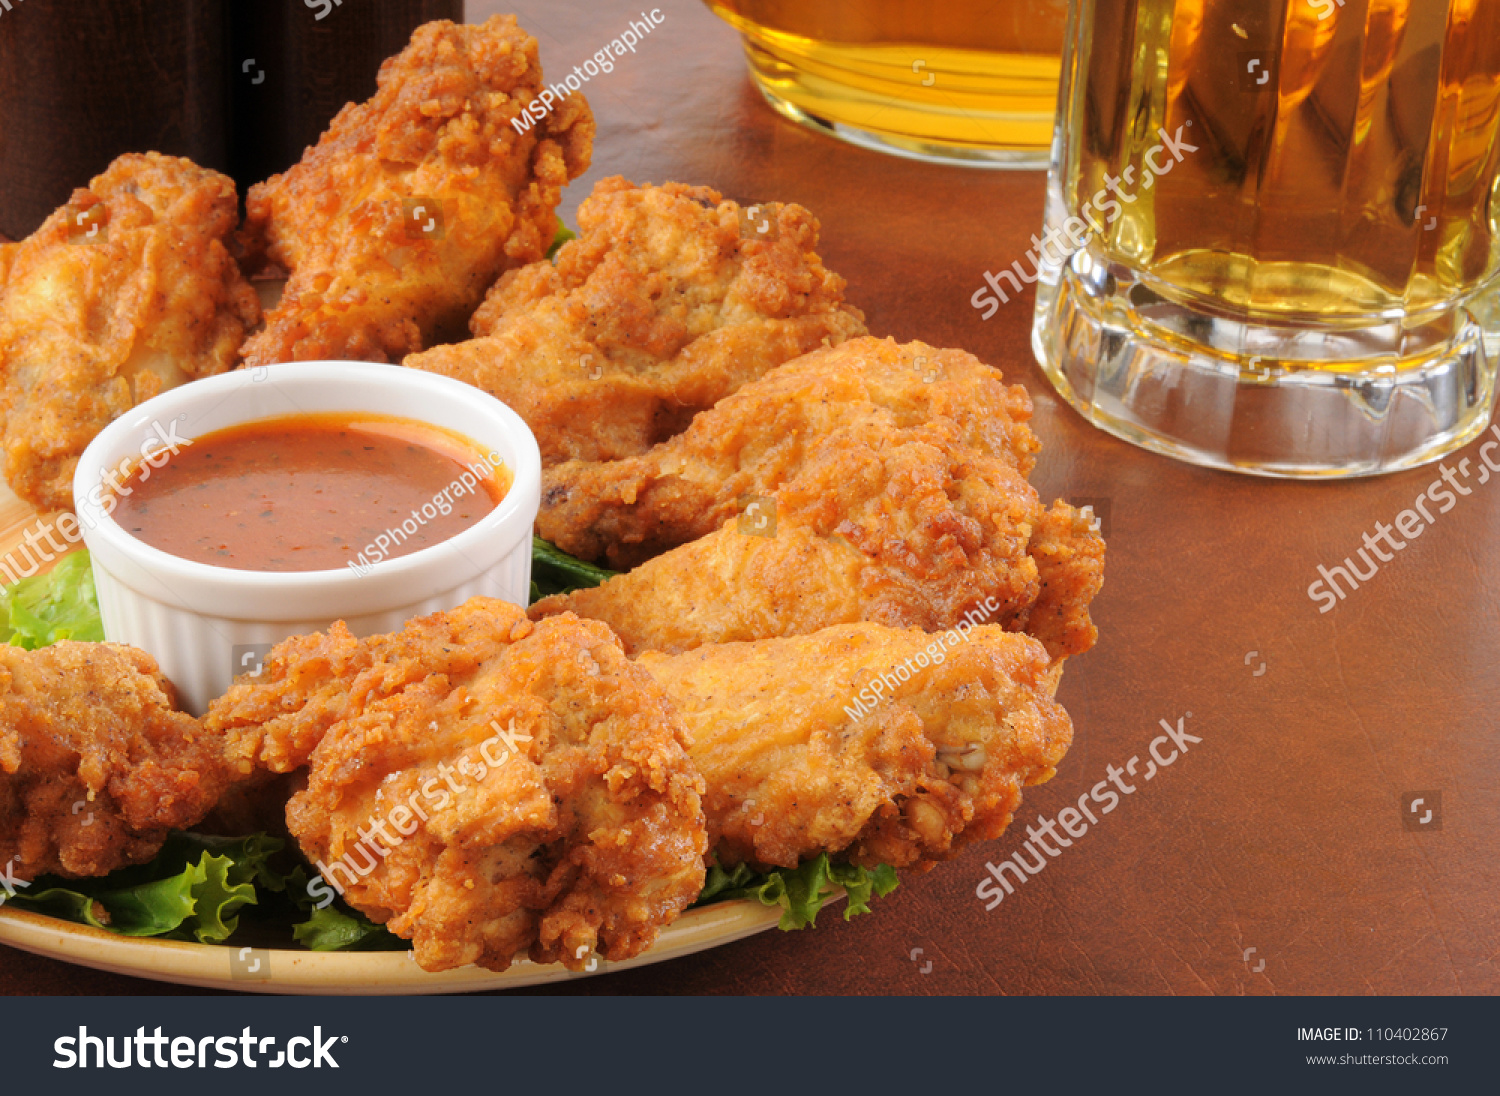 Chicken and beer - photo#21